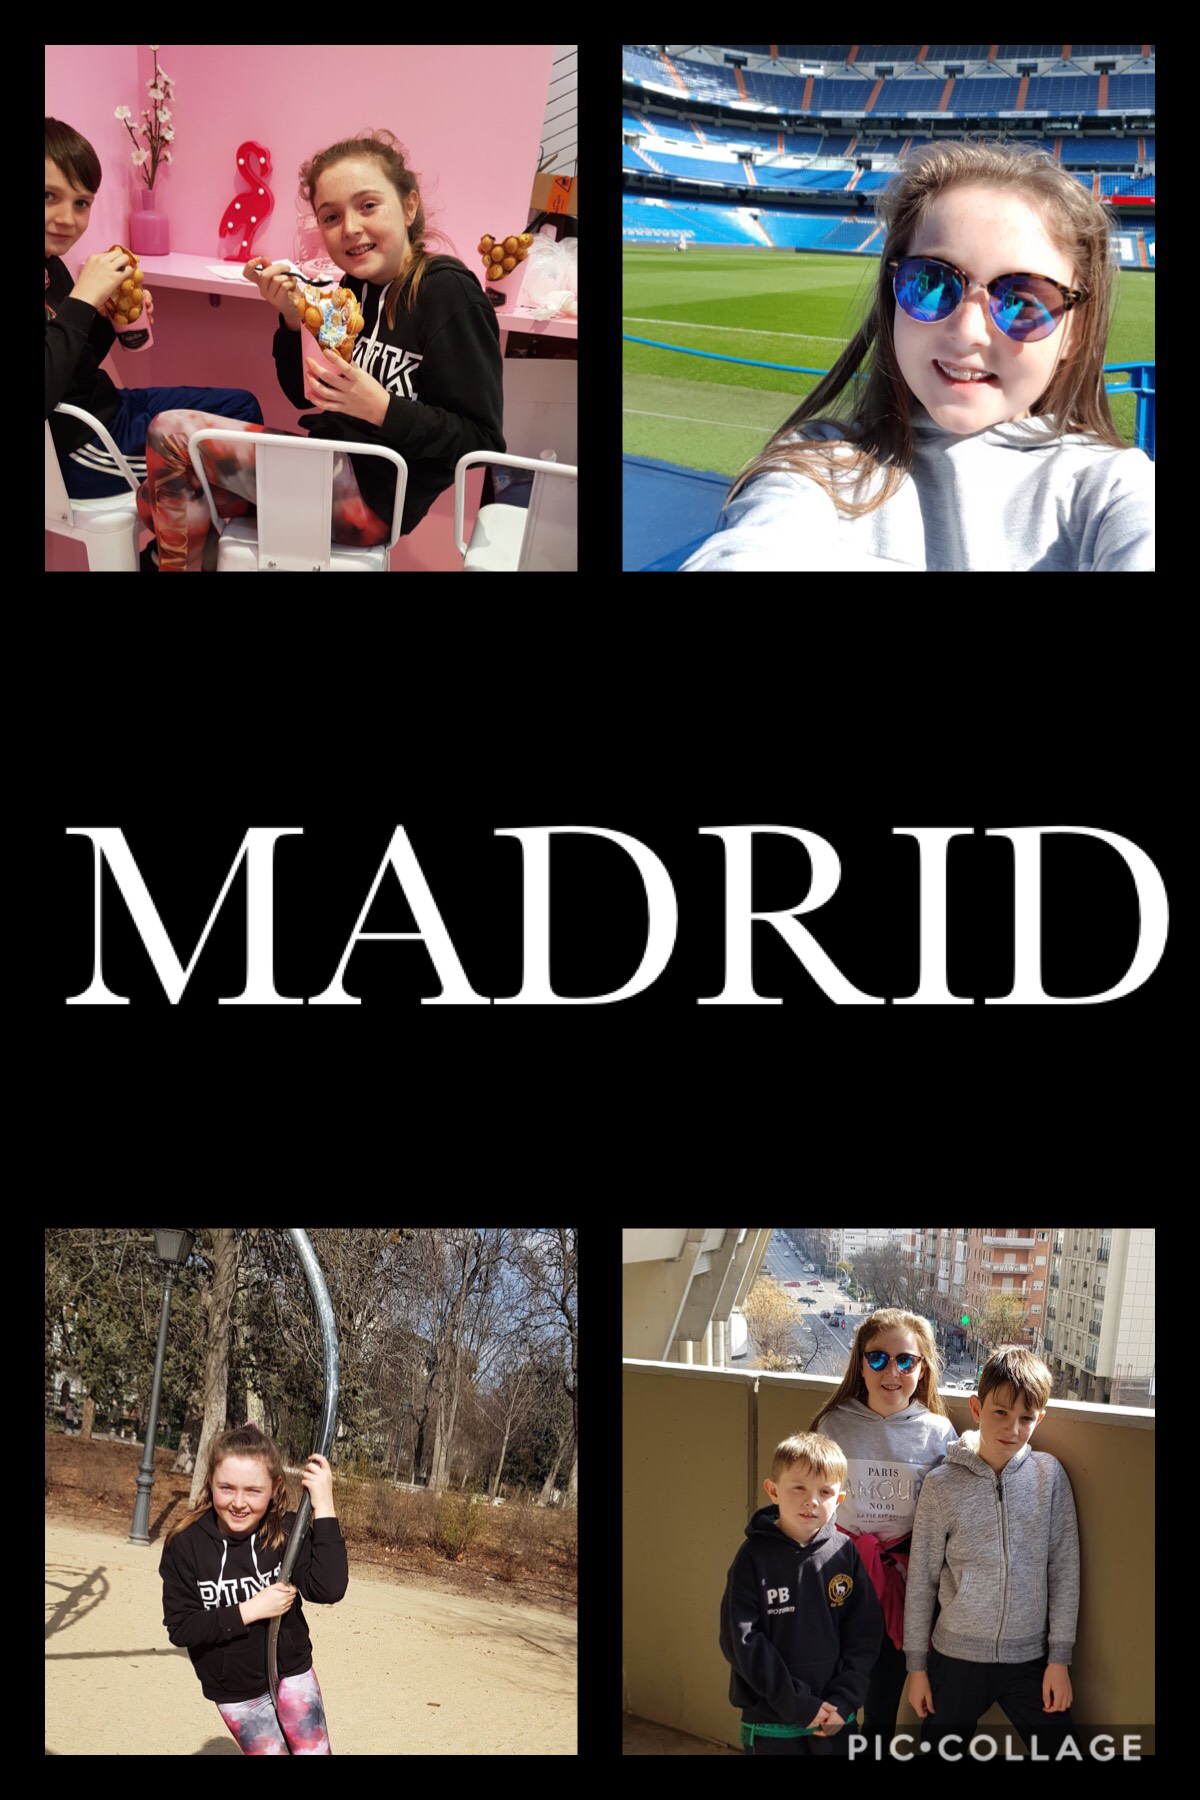 Madrid is such a nice city I hope I will go there again in the future😀😄😆